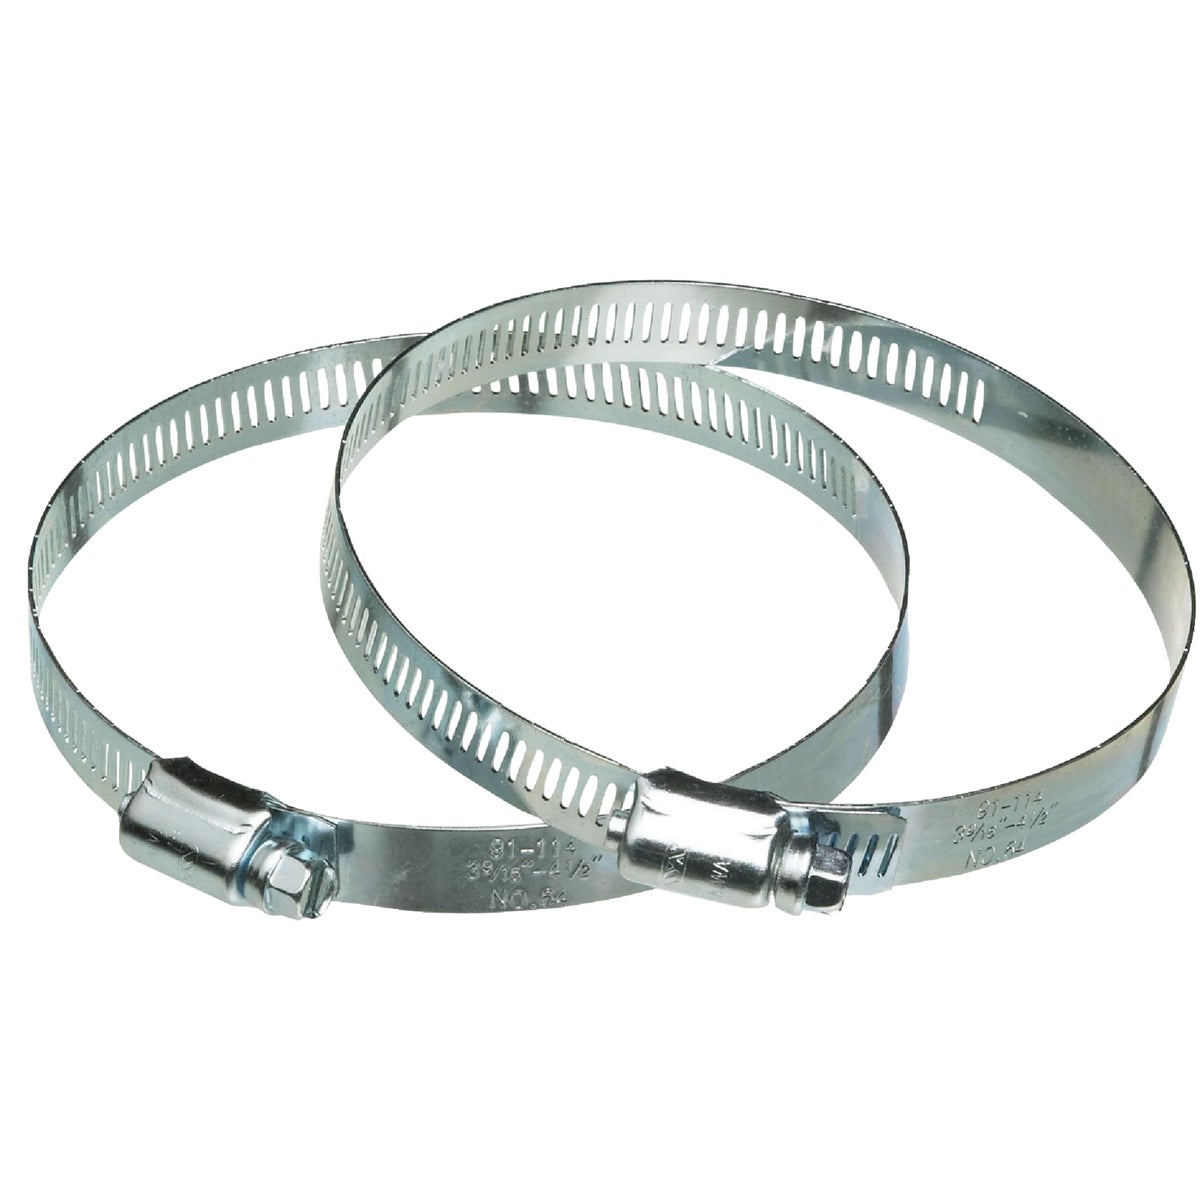 "2PK 4"" METAL DUCT CLAMP - 2MC4E by Dundas Jafine"